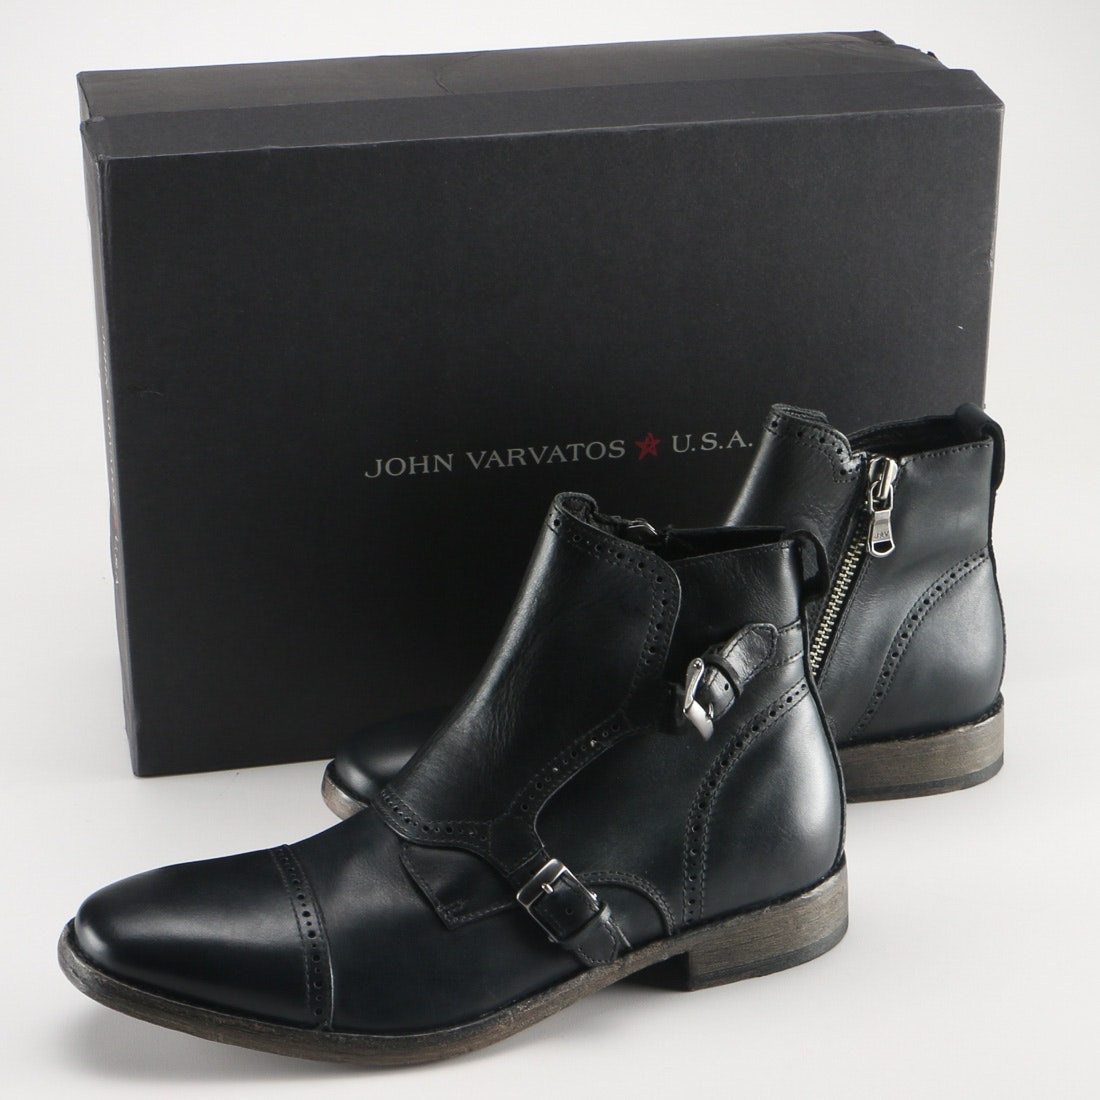 John Varvatos Leather Stanley Brogued Monk Boots